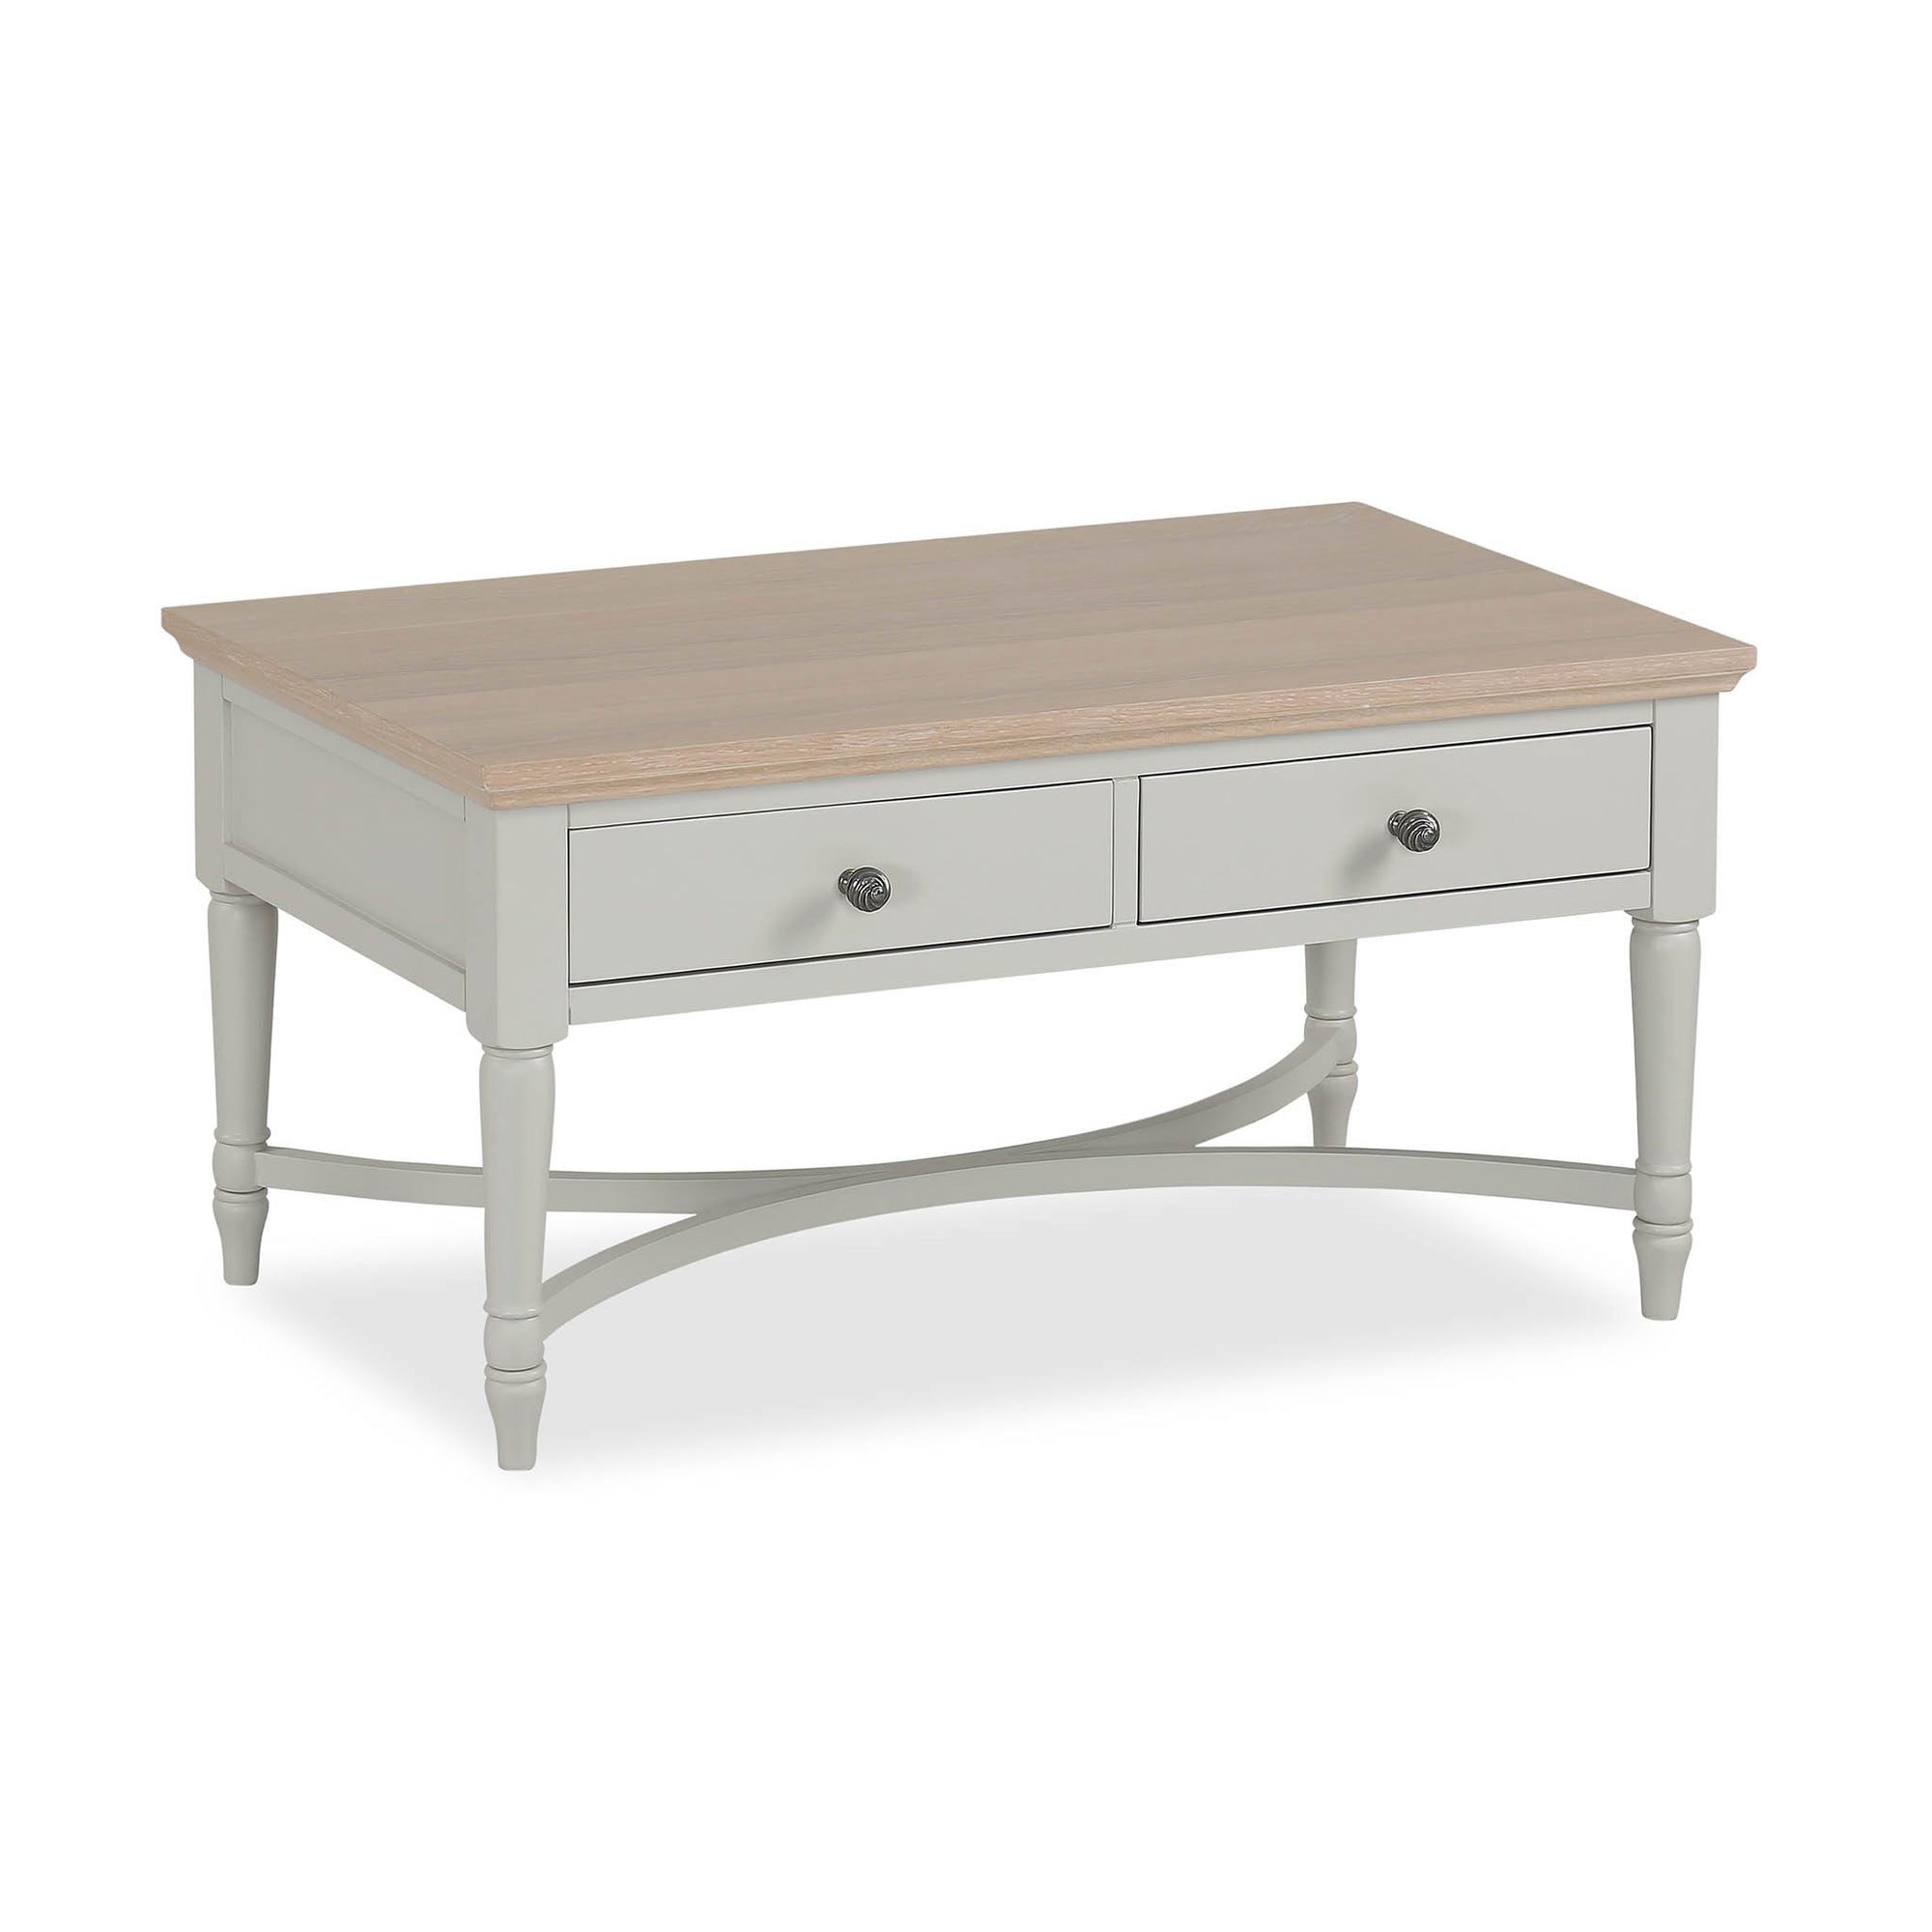 Melrose Grey Coffee Table from Roseland Furniture